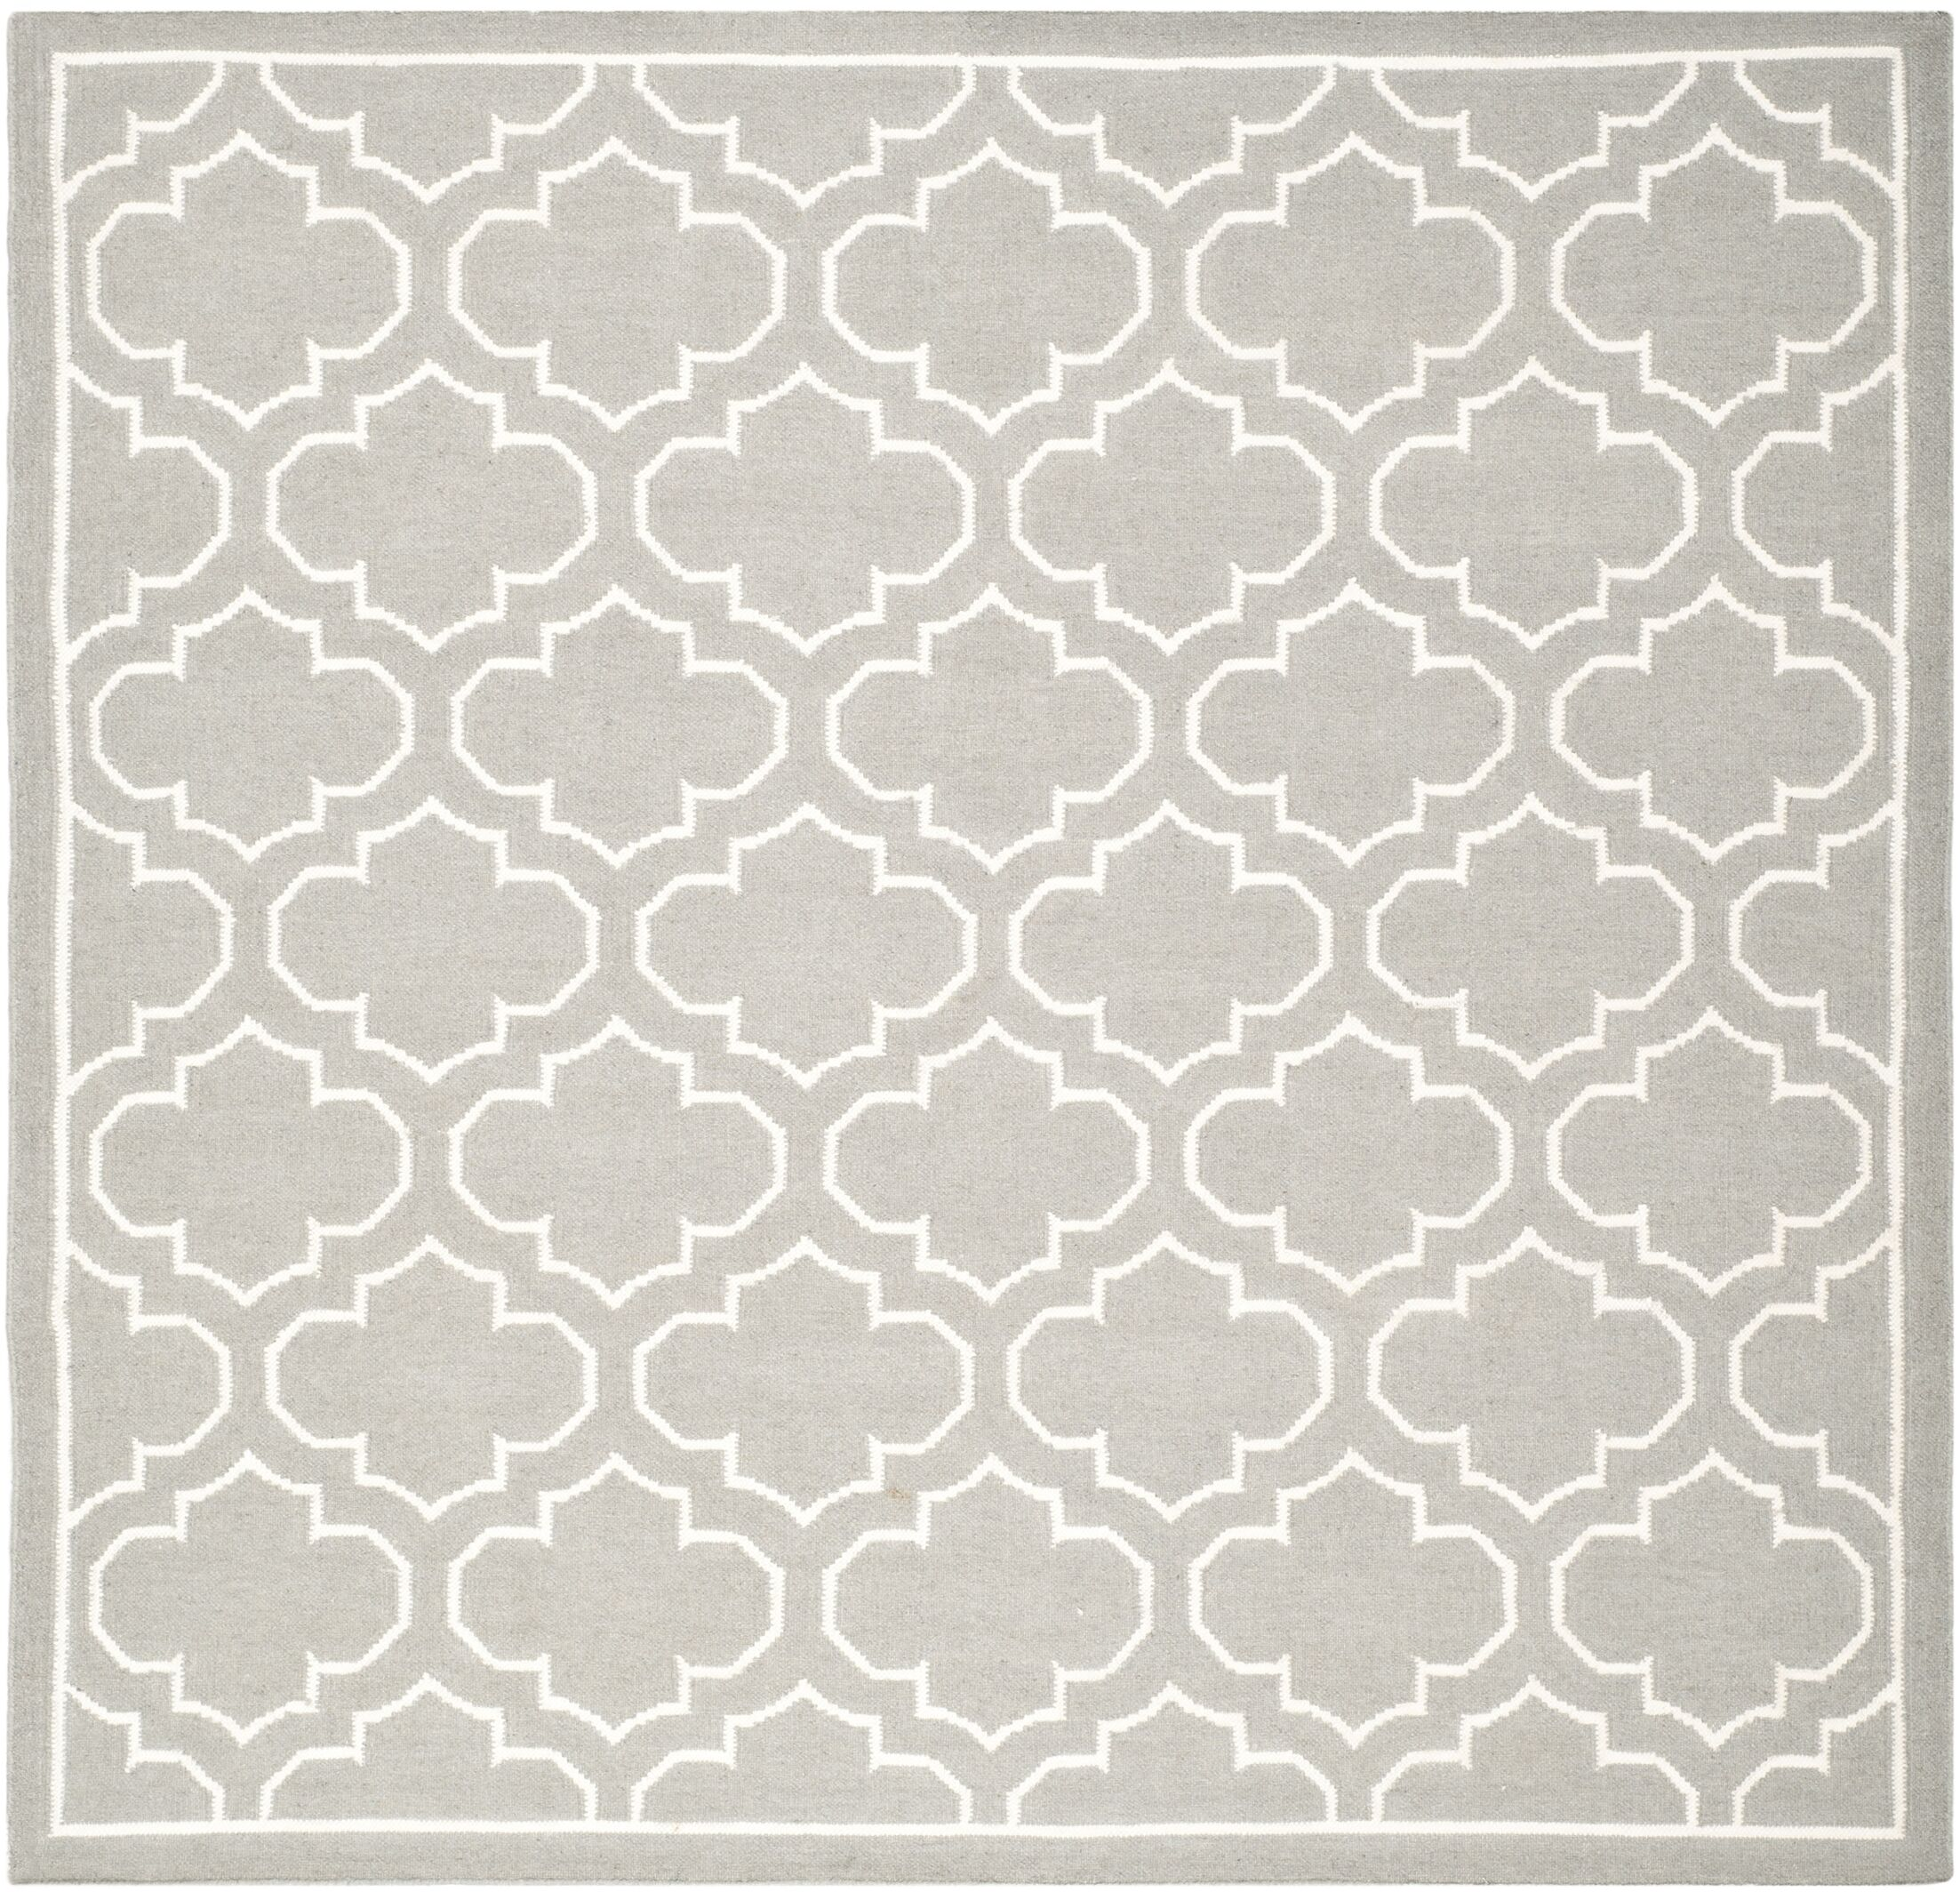 Dhurries Hand-Woven Wool Gray/Ivory Area Rug Rug Size: Square 7'